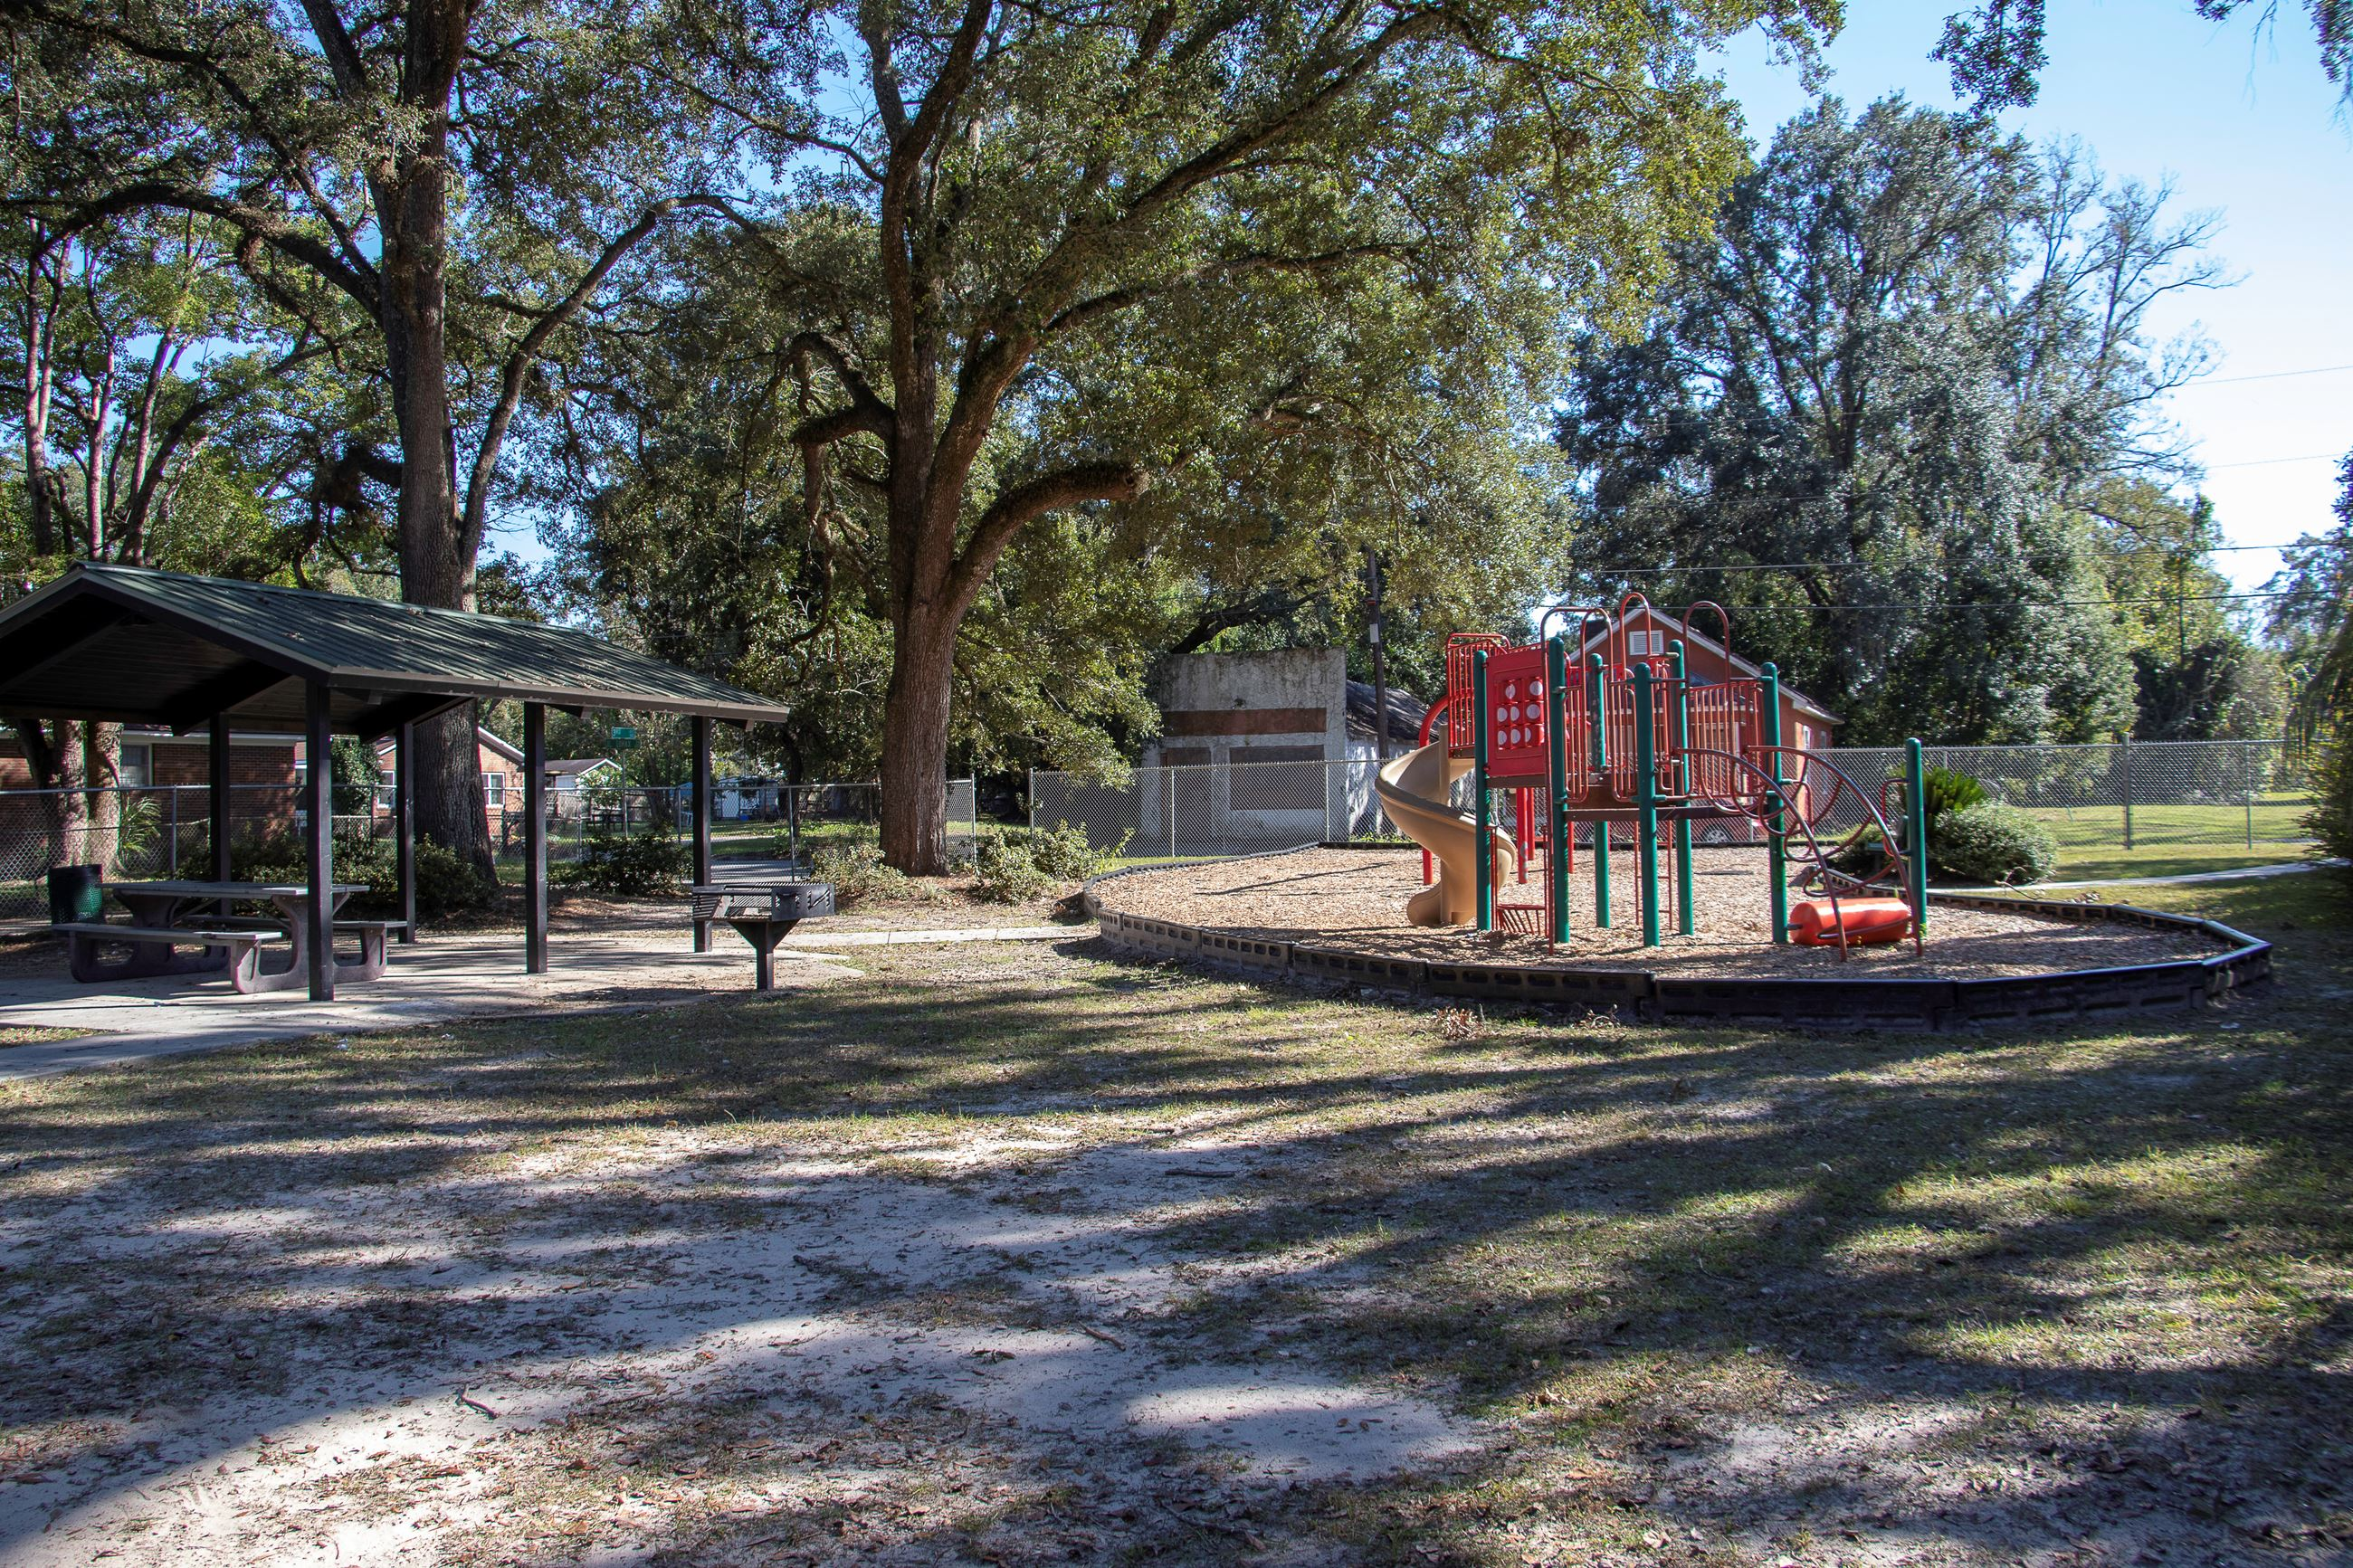 An image of a picnic shelter next to a playground.